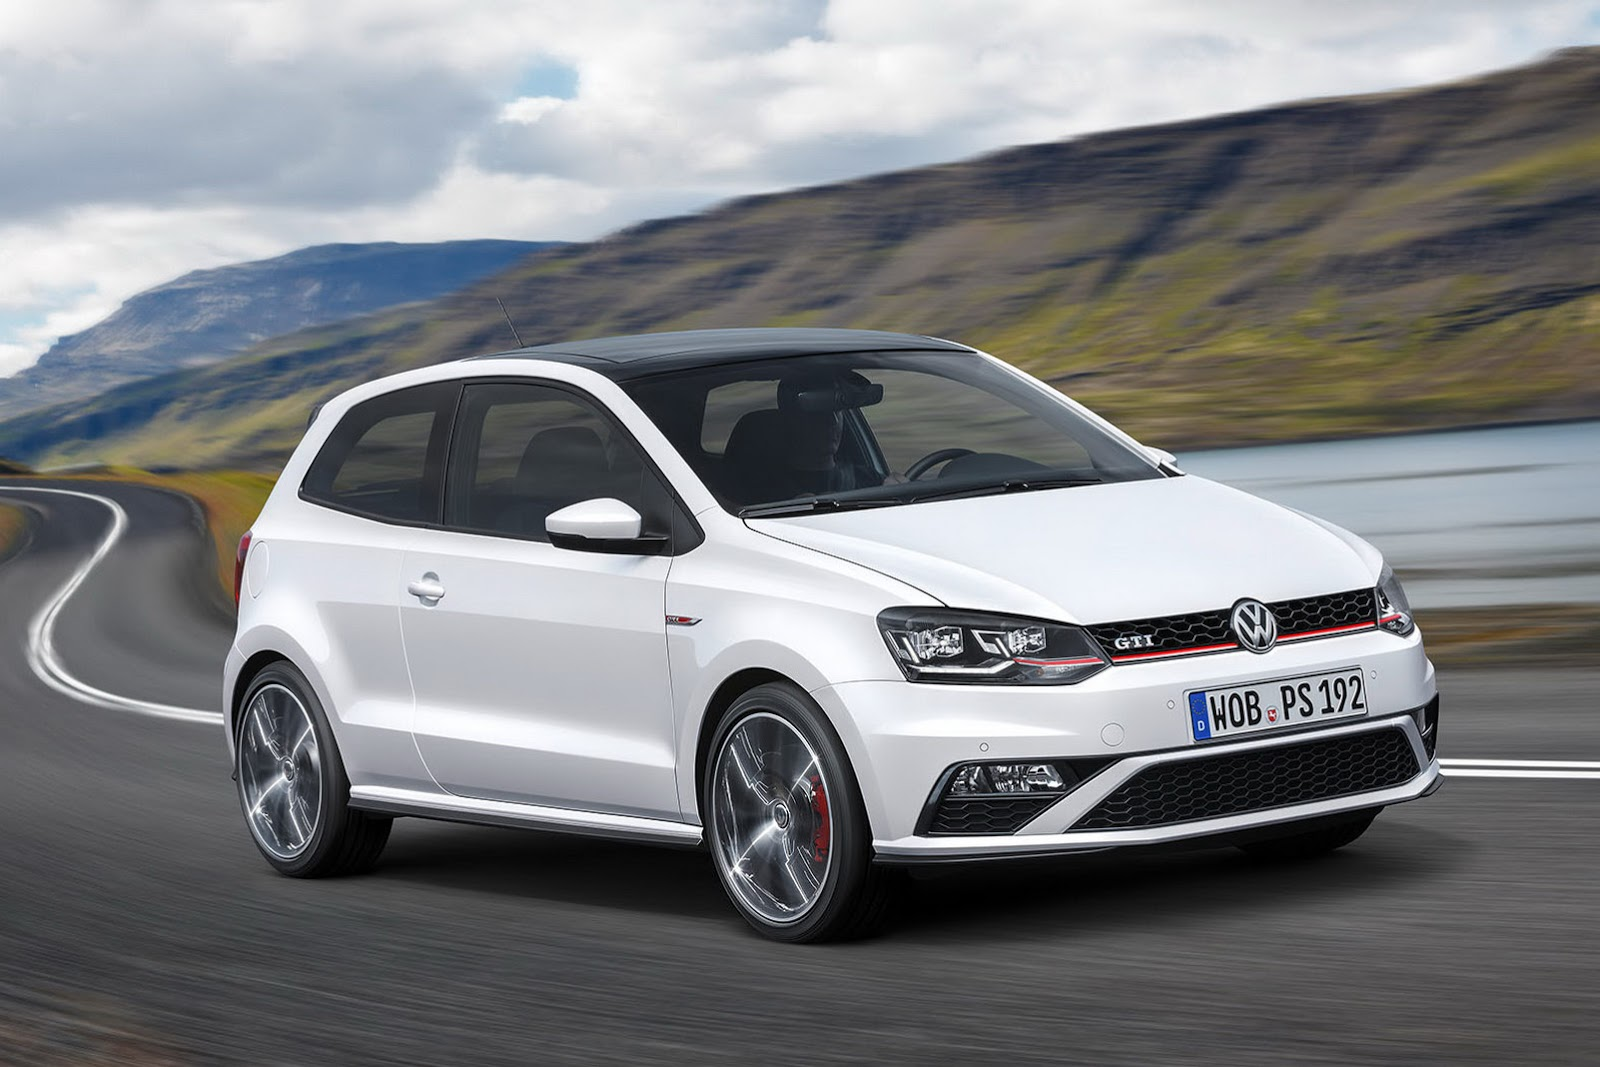 2015 volkswagen polo gti revealed with 1 8 tsi engine autoevolution. Black Bedroom Furniture Sets. Home Design Ideas